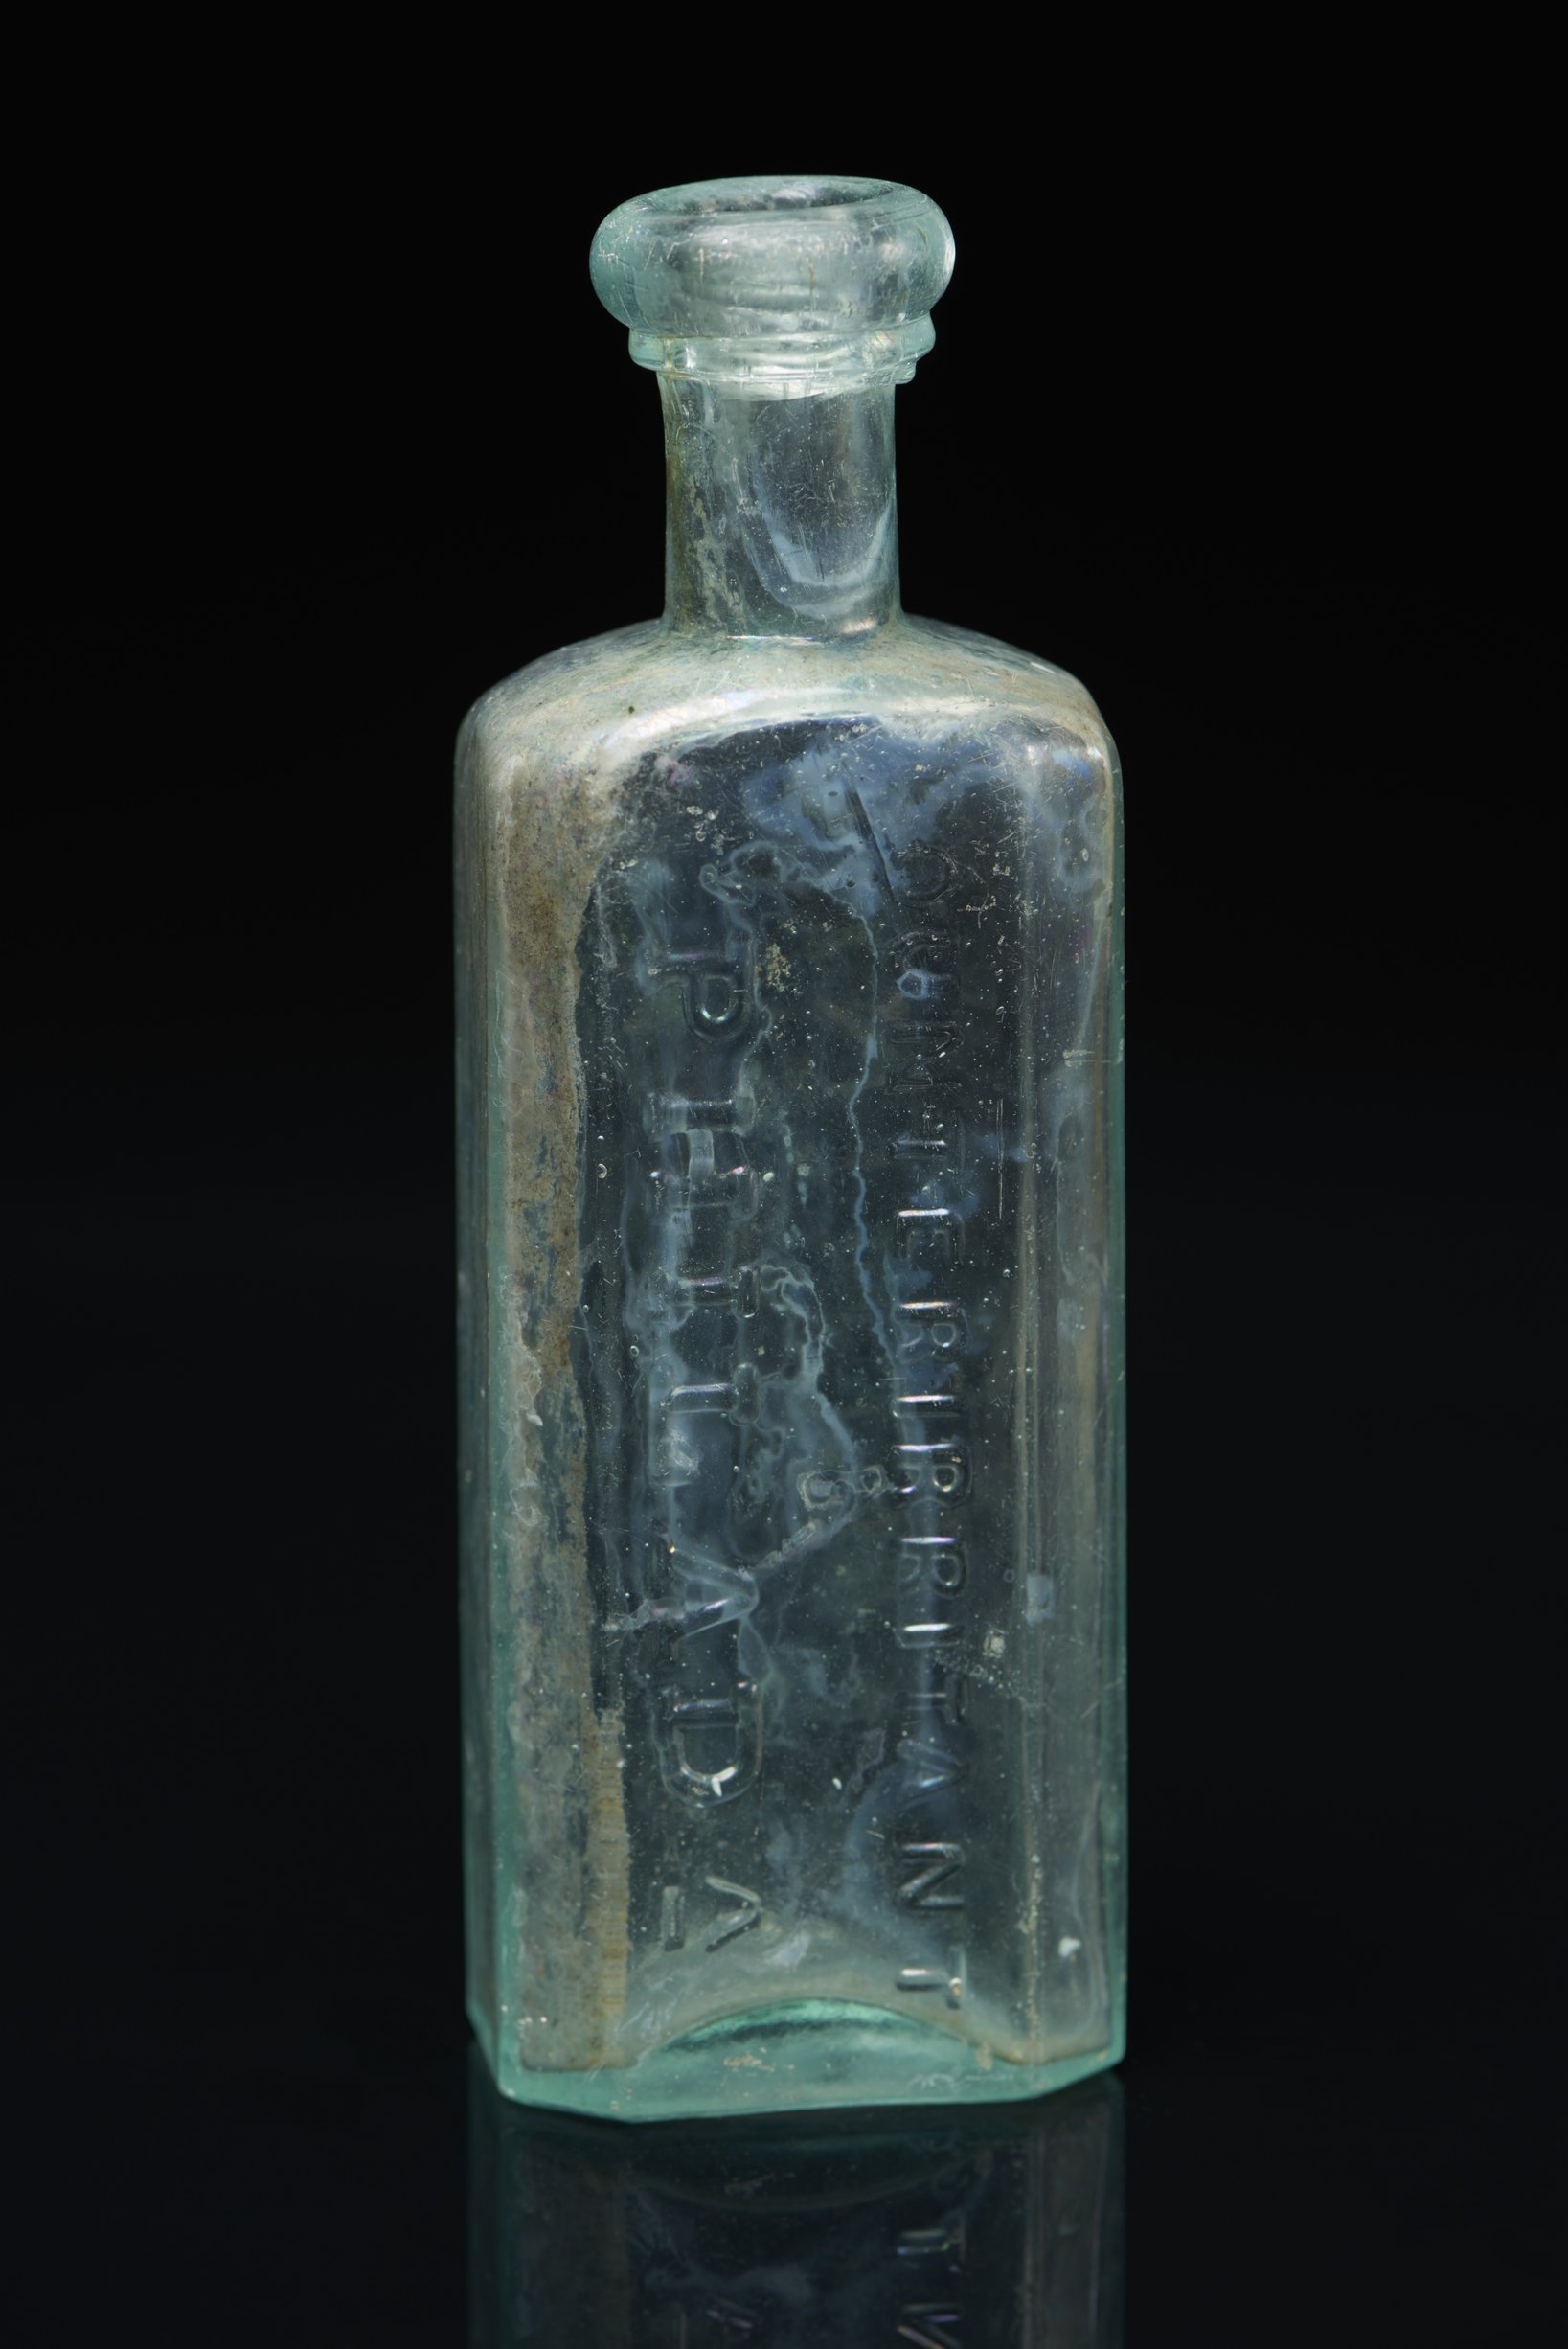 Dr. D. Jayne Liniment or Counterirritant Bottle from the Iowa and Sac and Fox Mission, 14DP384 - 36